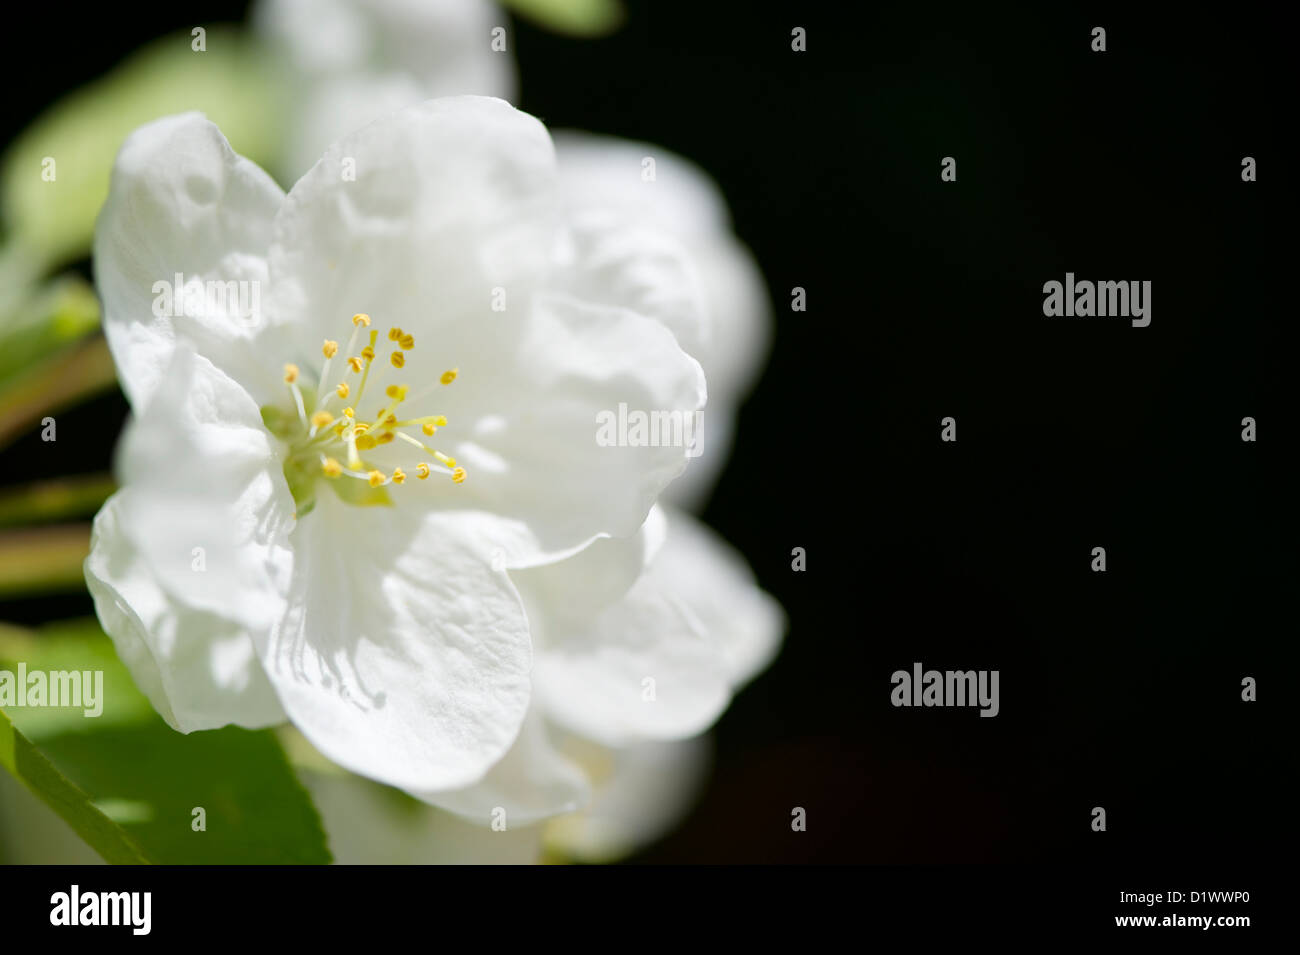 Close up of a beautiful white Cherry blossom. Stock Photo